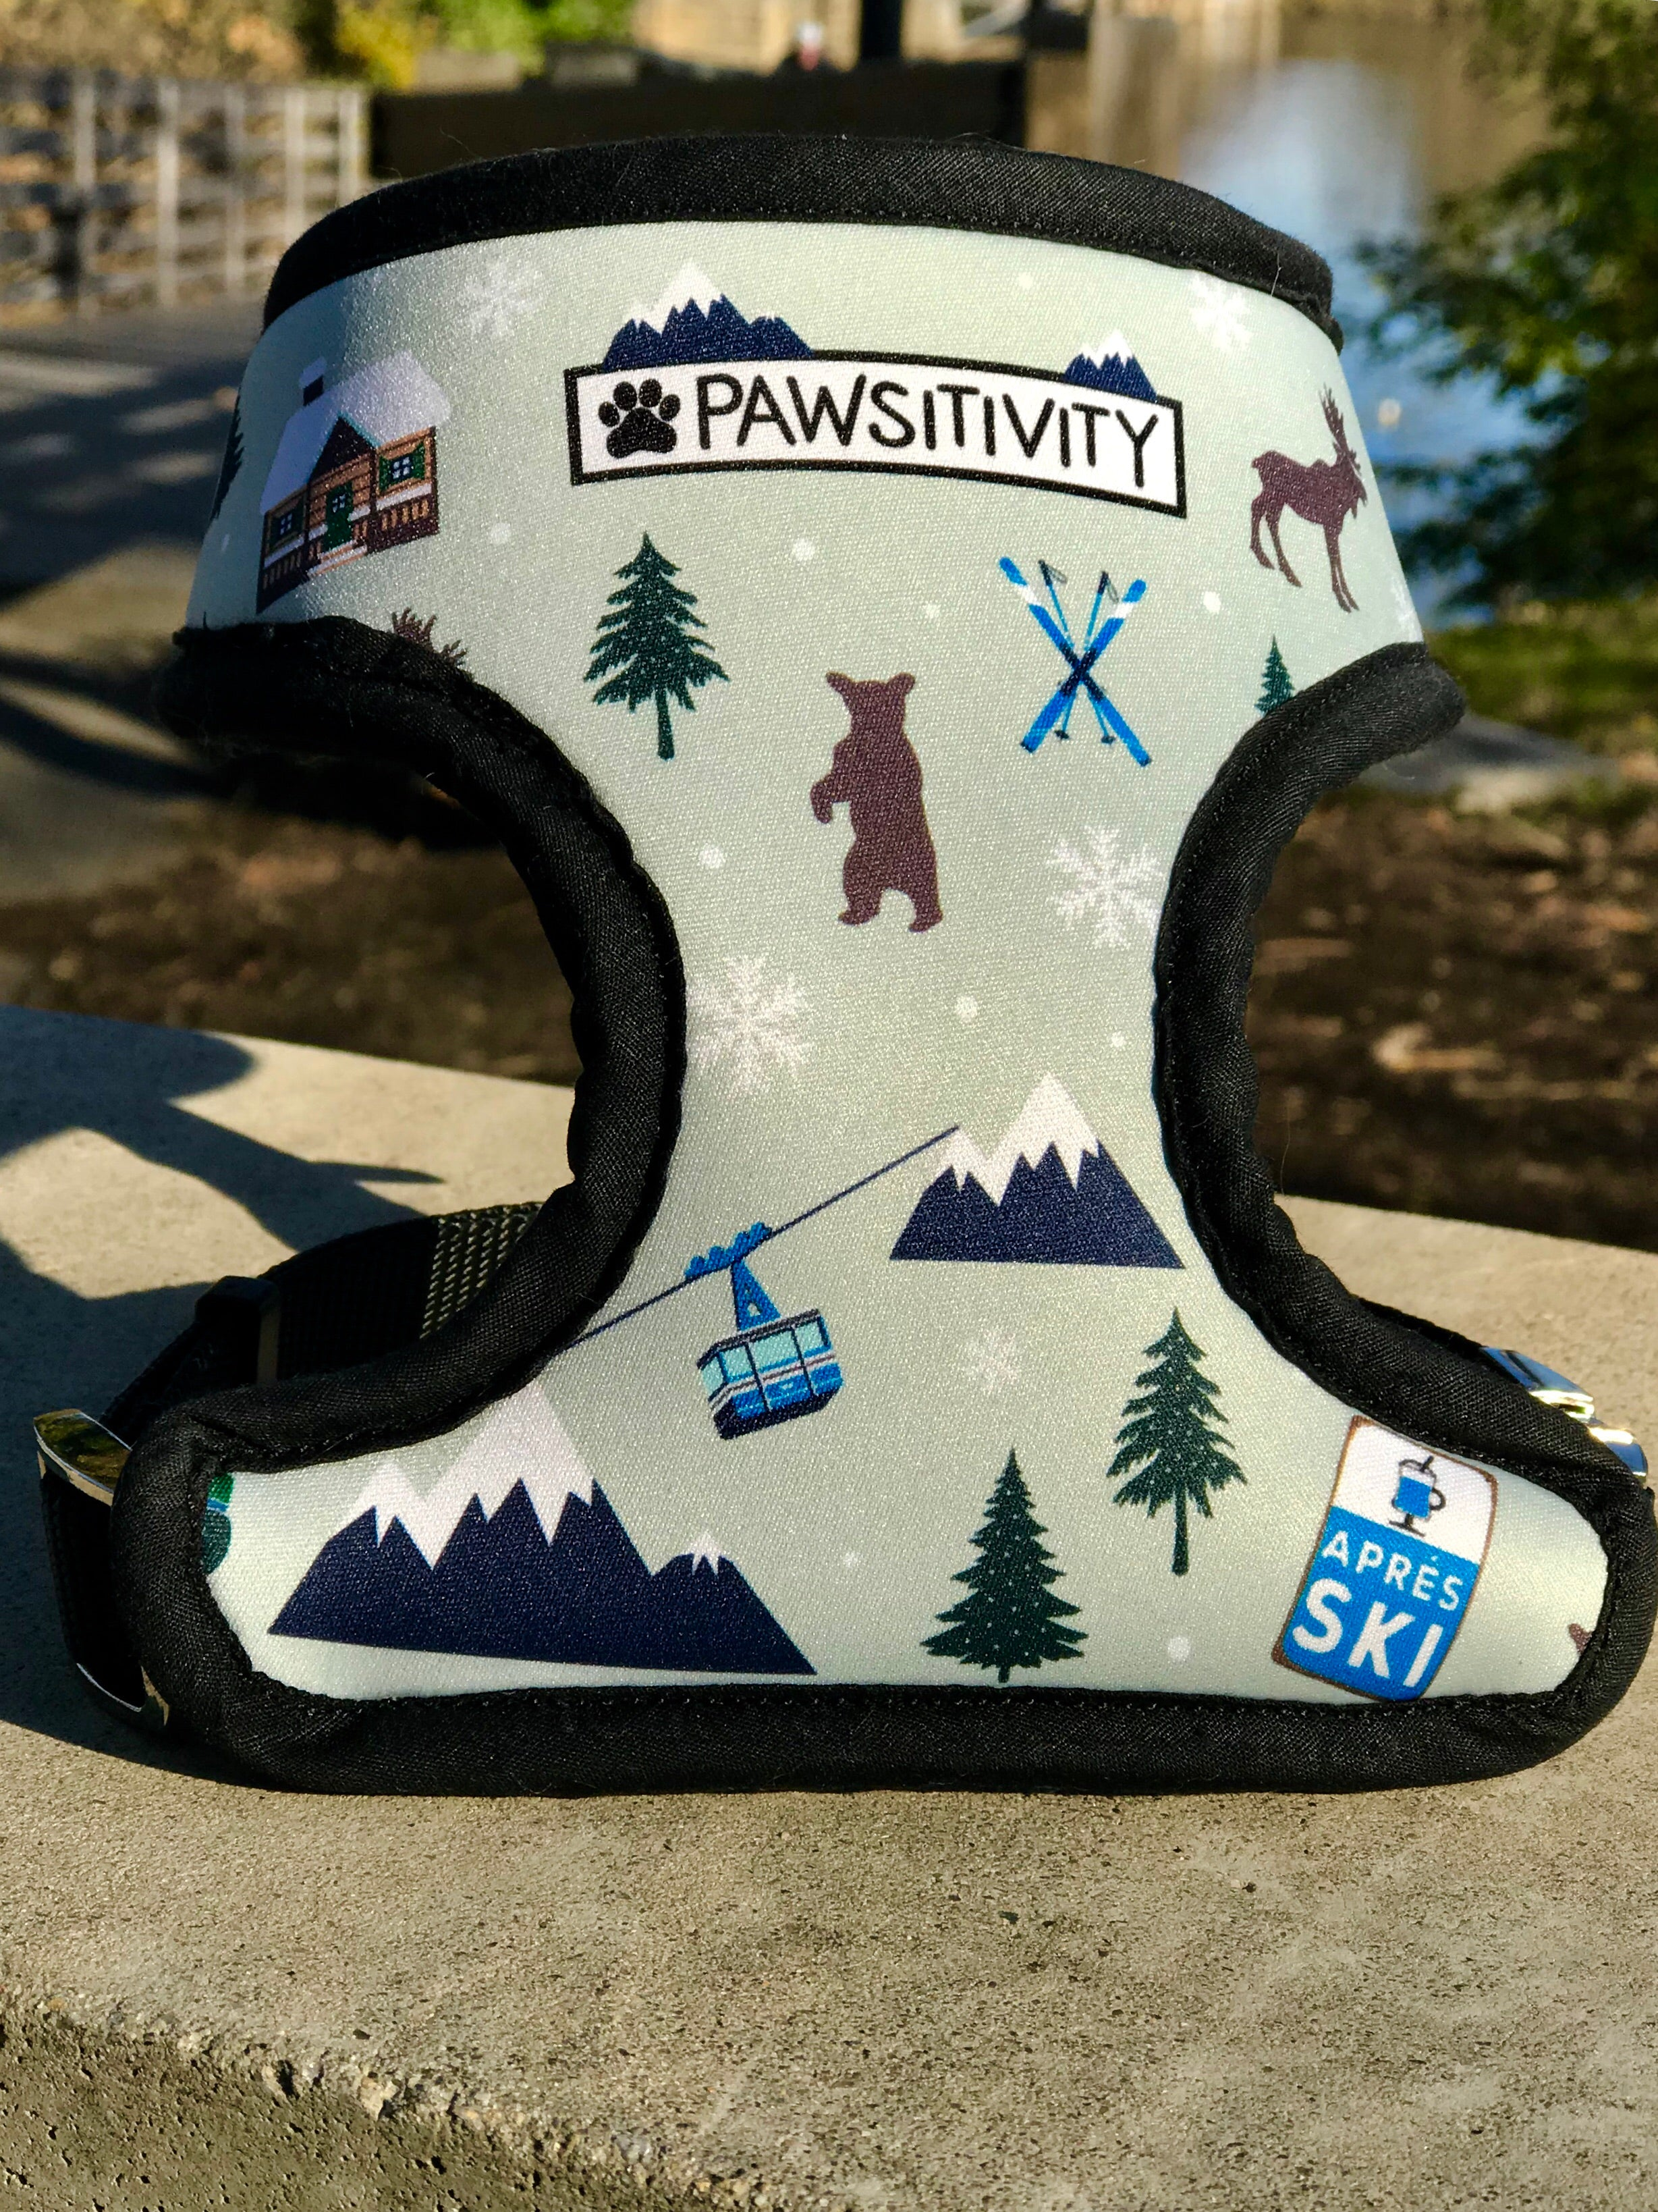 Pawsitivity Reversible Harness - Winter Explorer Spruce Green & Birch